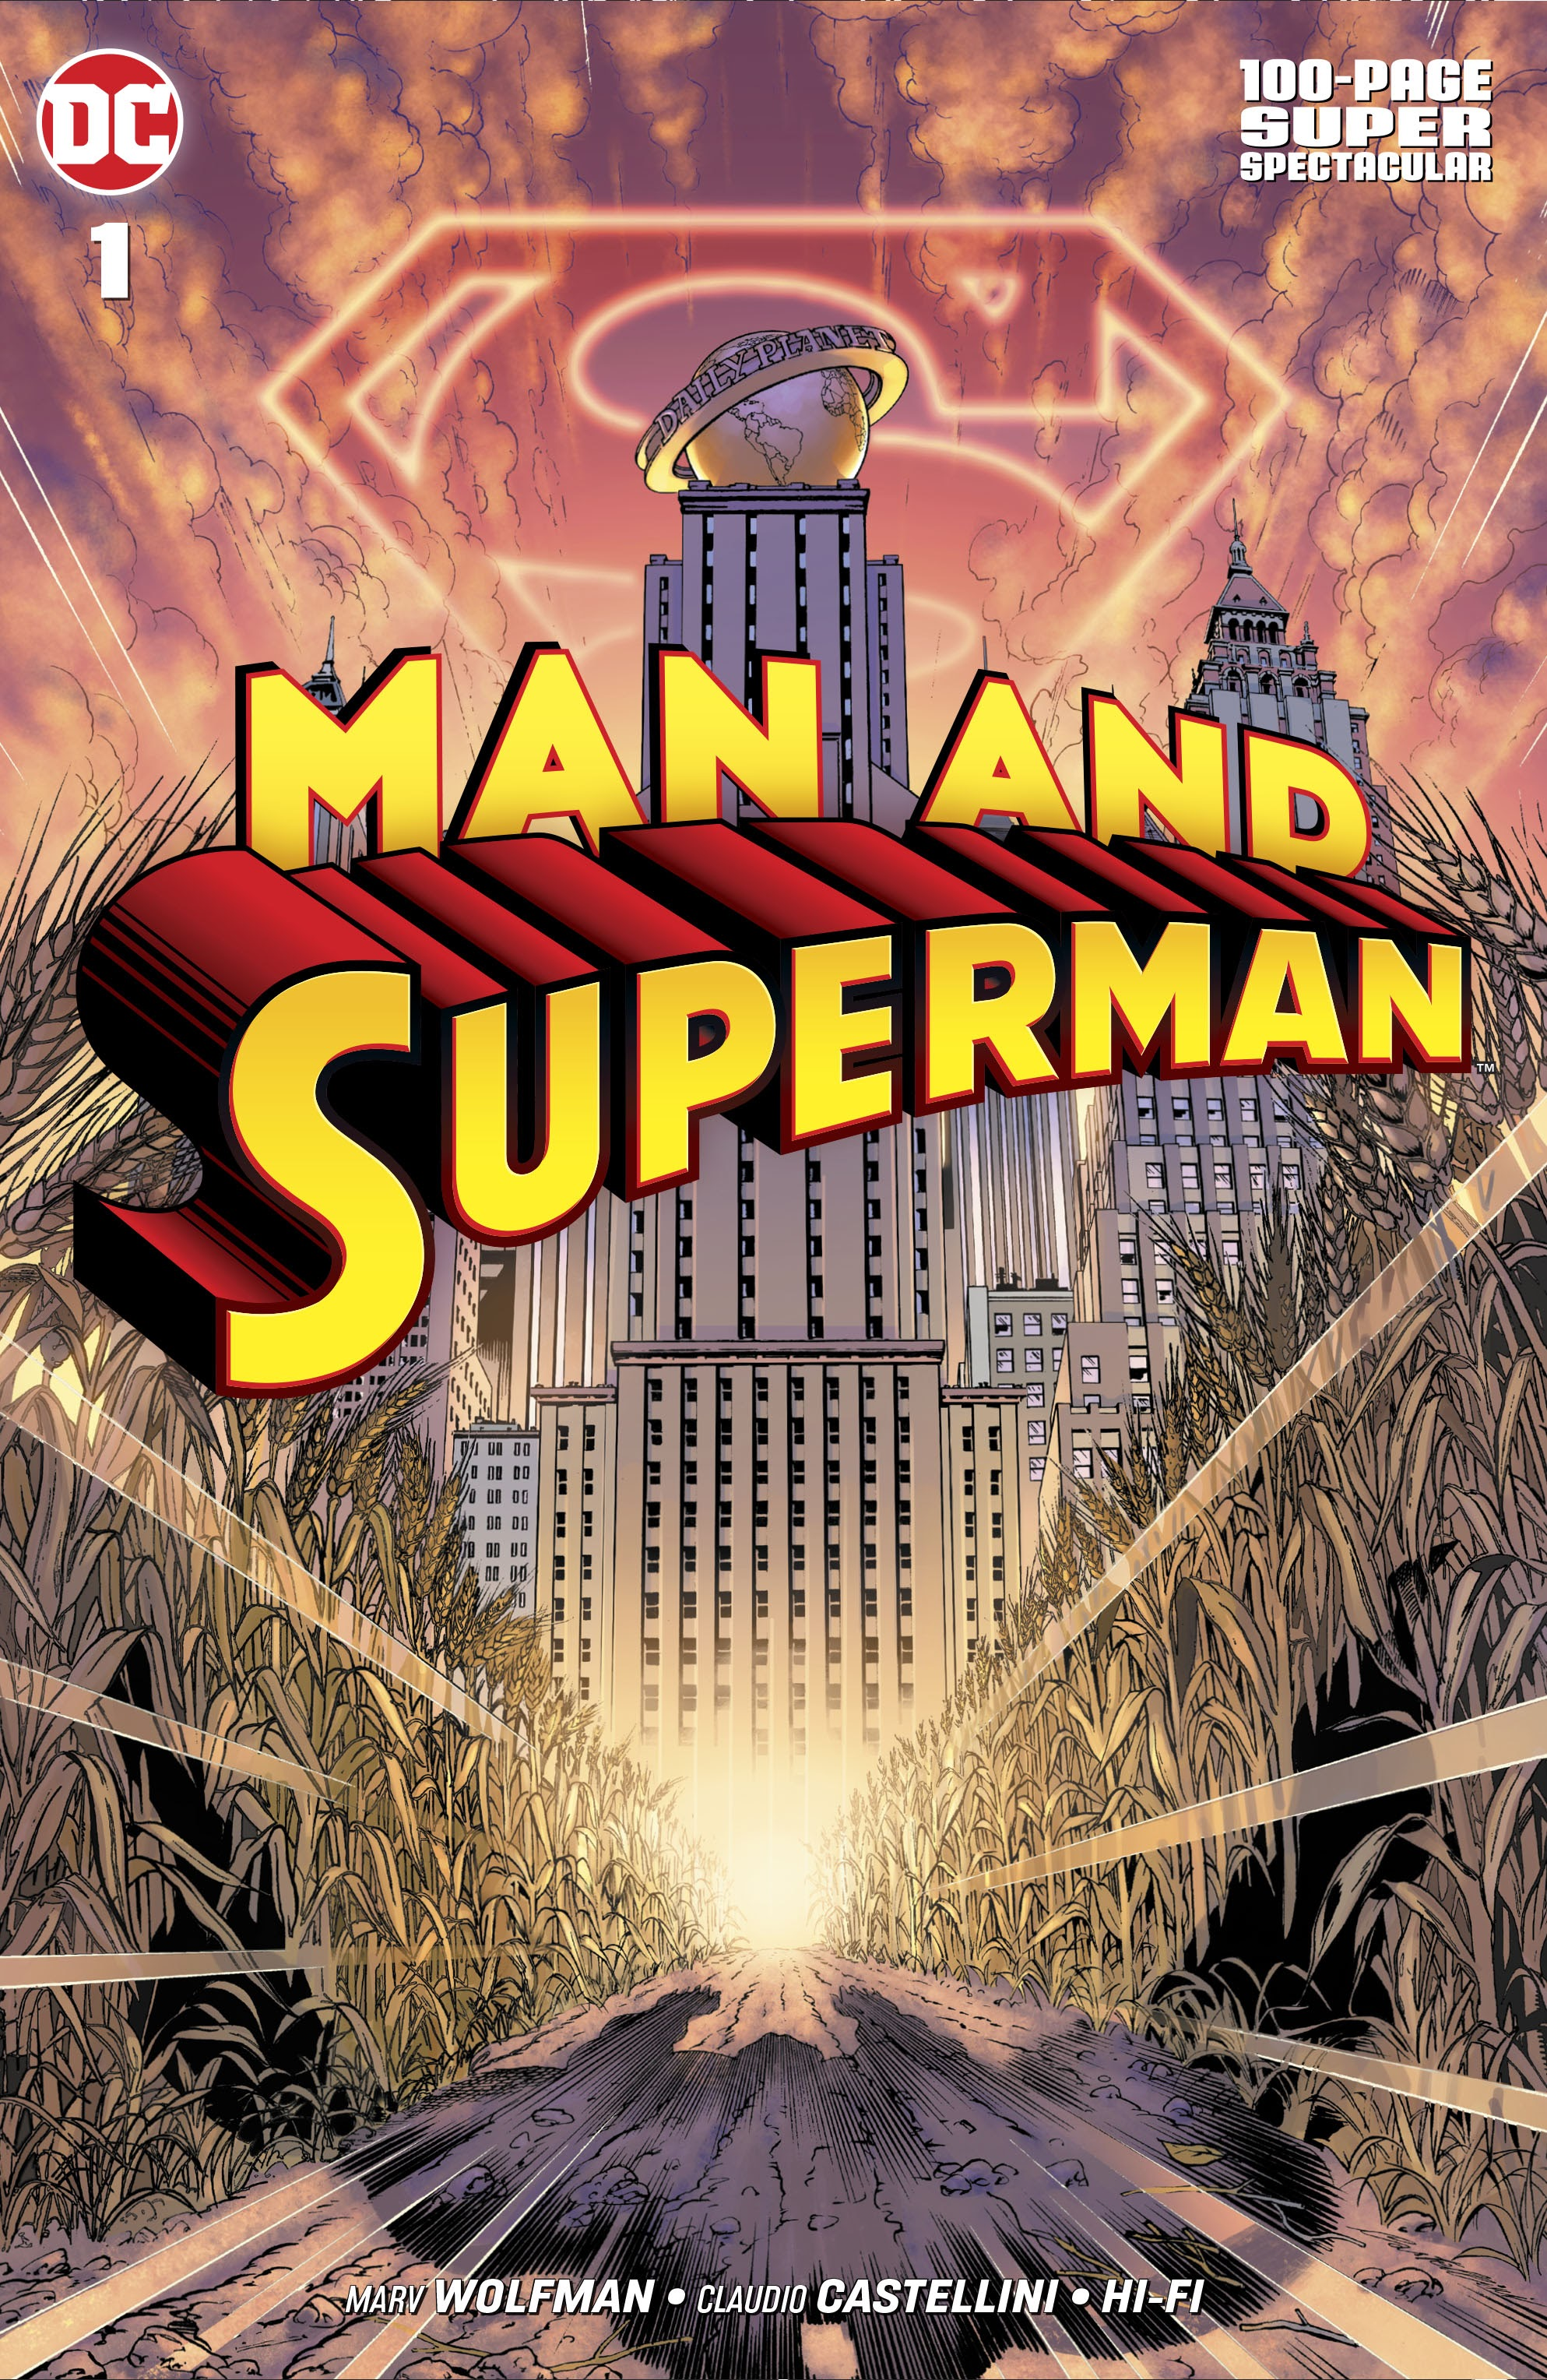 Man and Superman 100-Page Super Spectacular Full Page 1